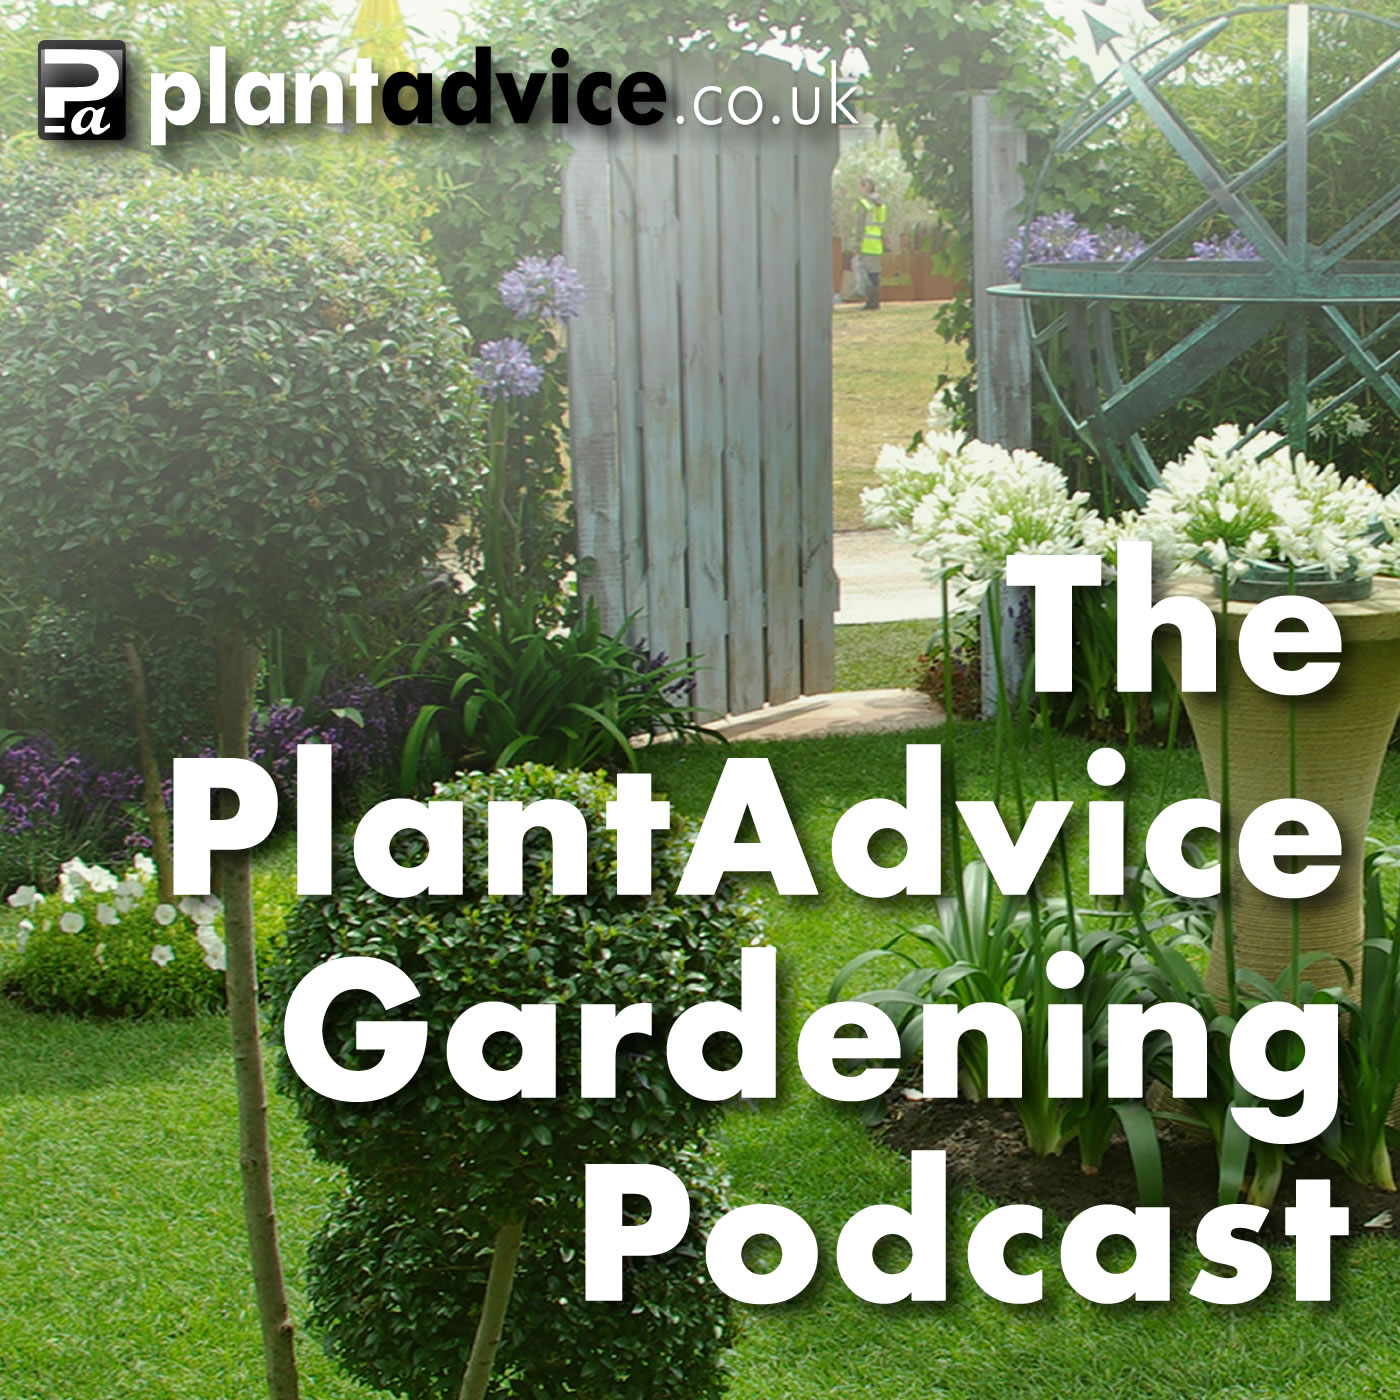 The PlantAdvice Gardening Podcast: Top Tips for your Garden and Plants